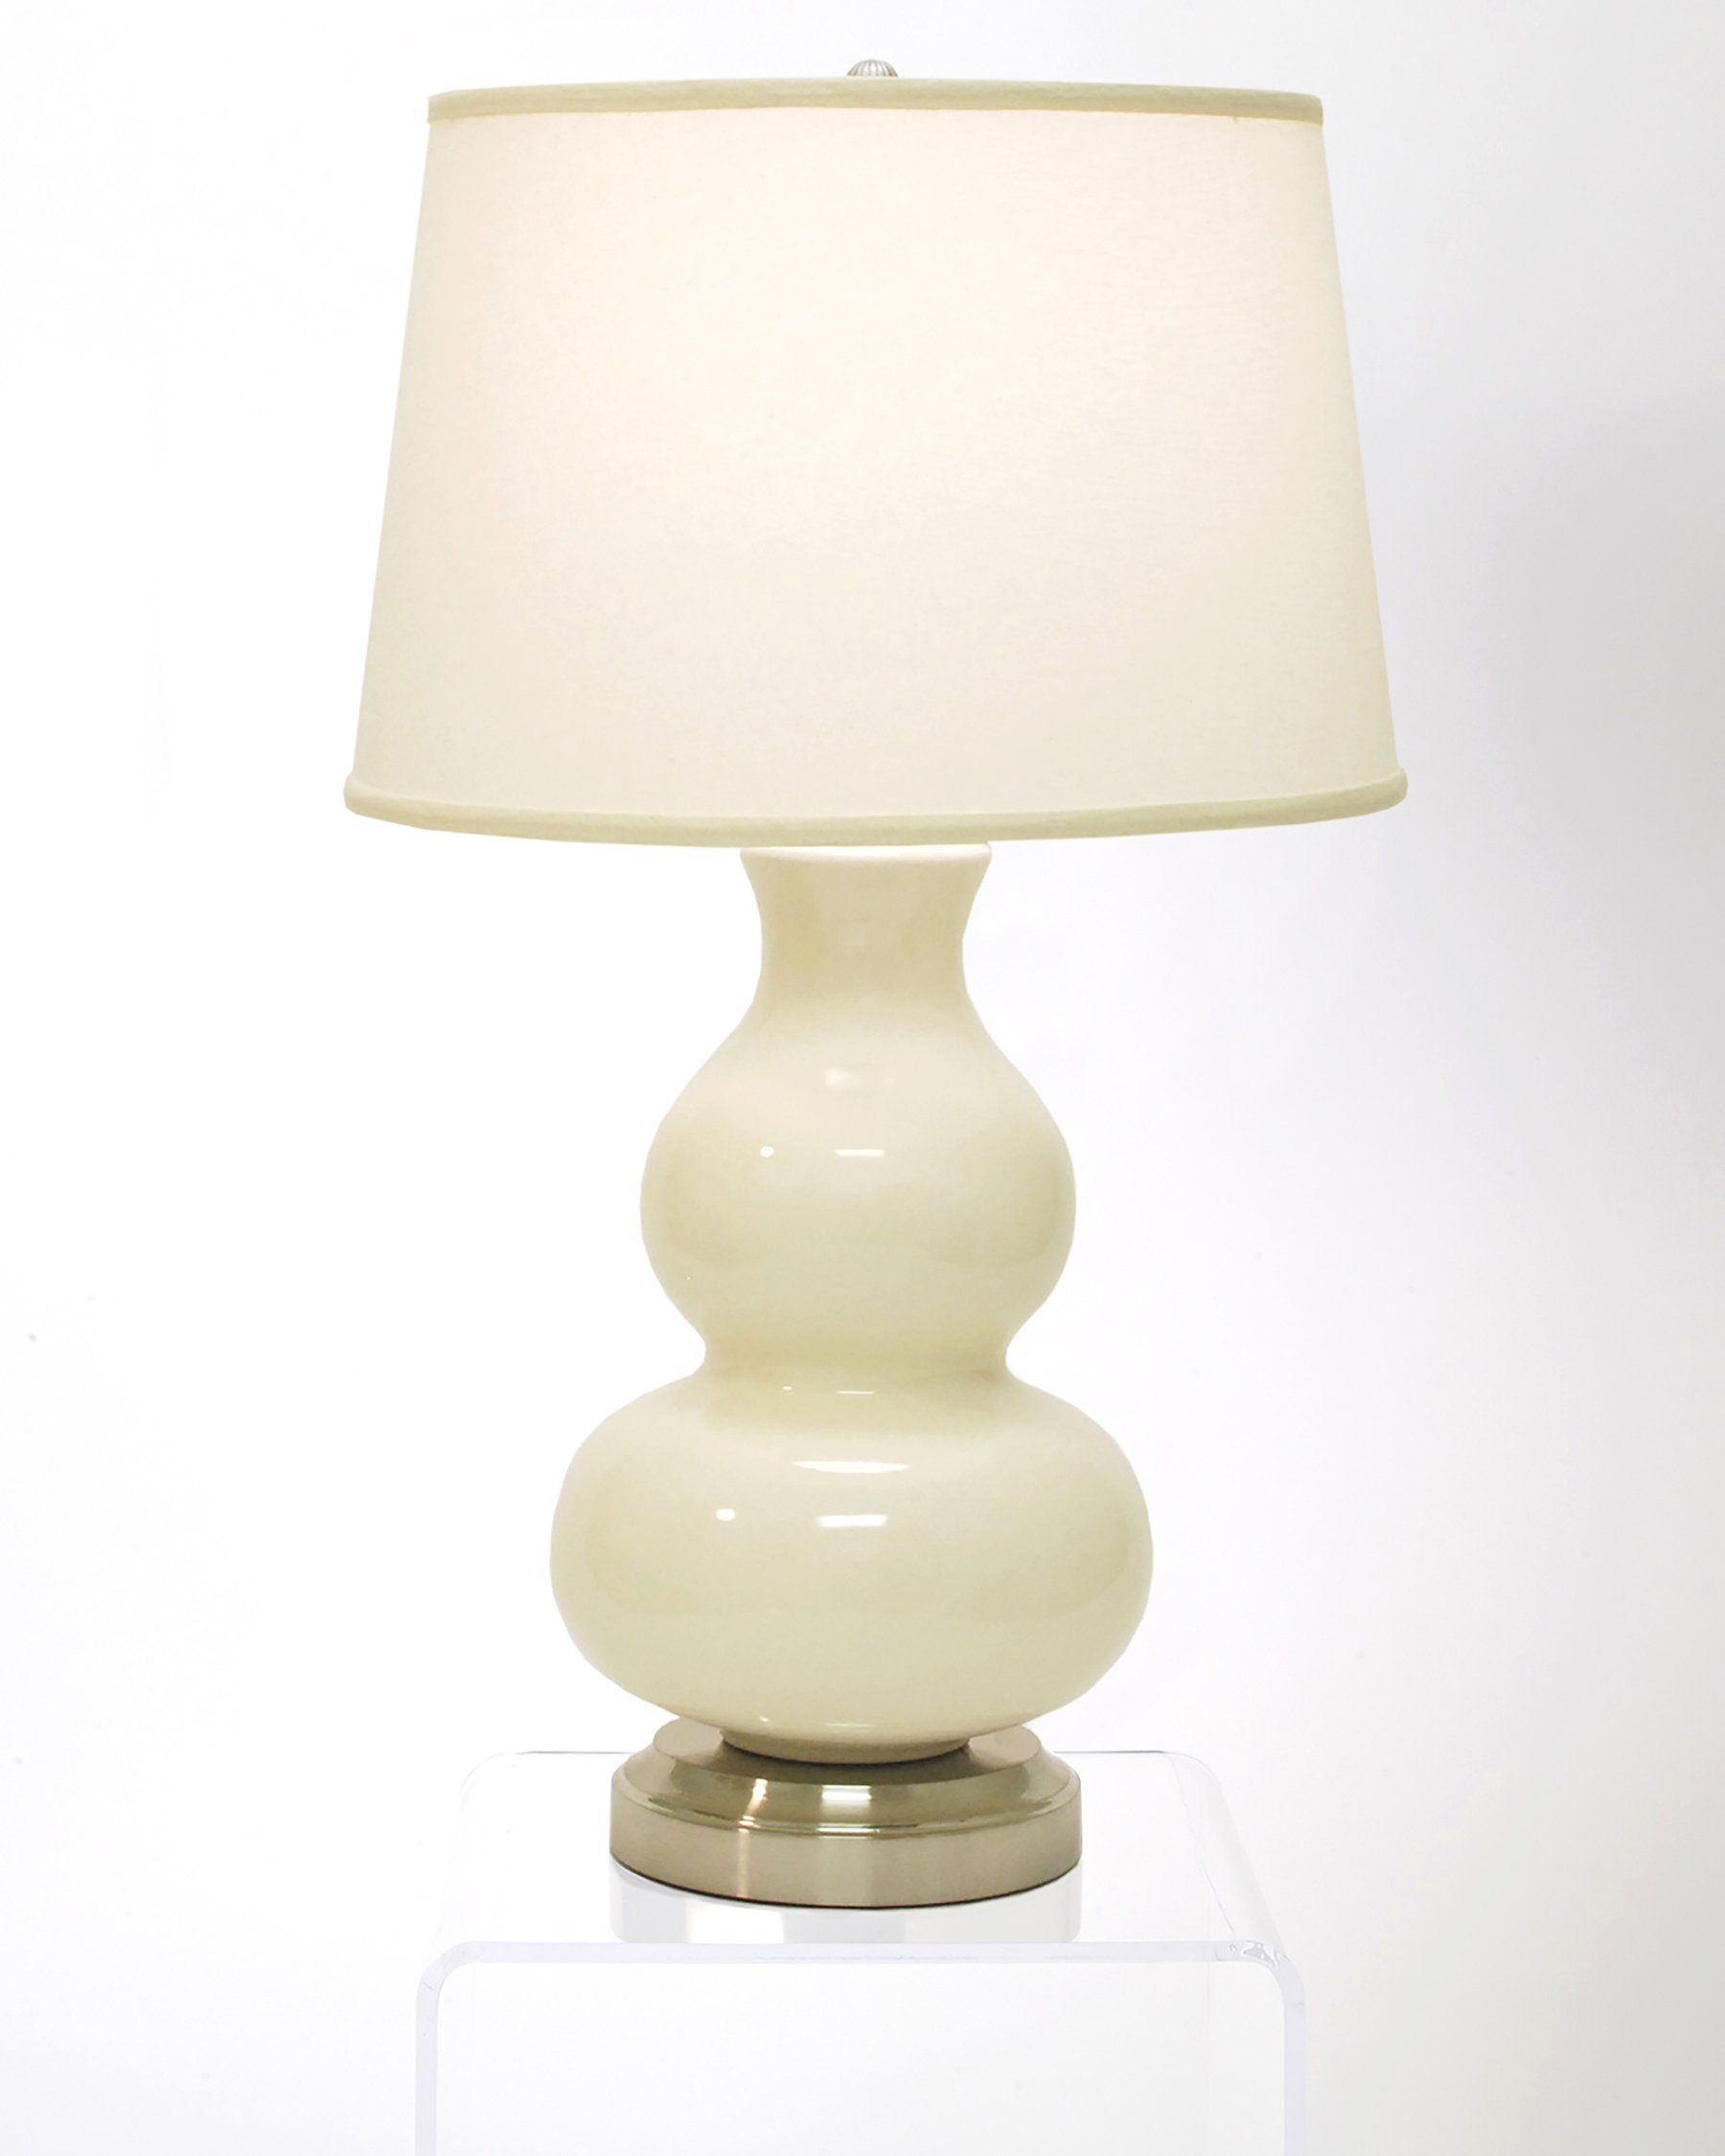 Marilyn ivory on nickel cordless lamp made in the usa